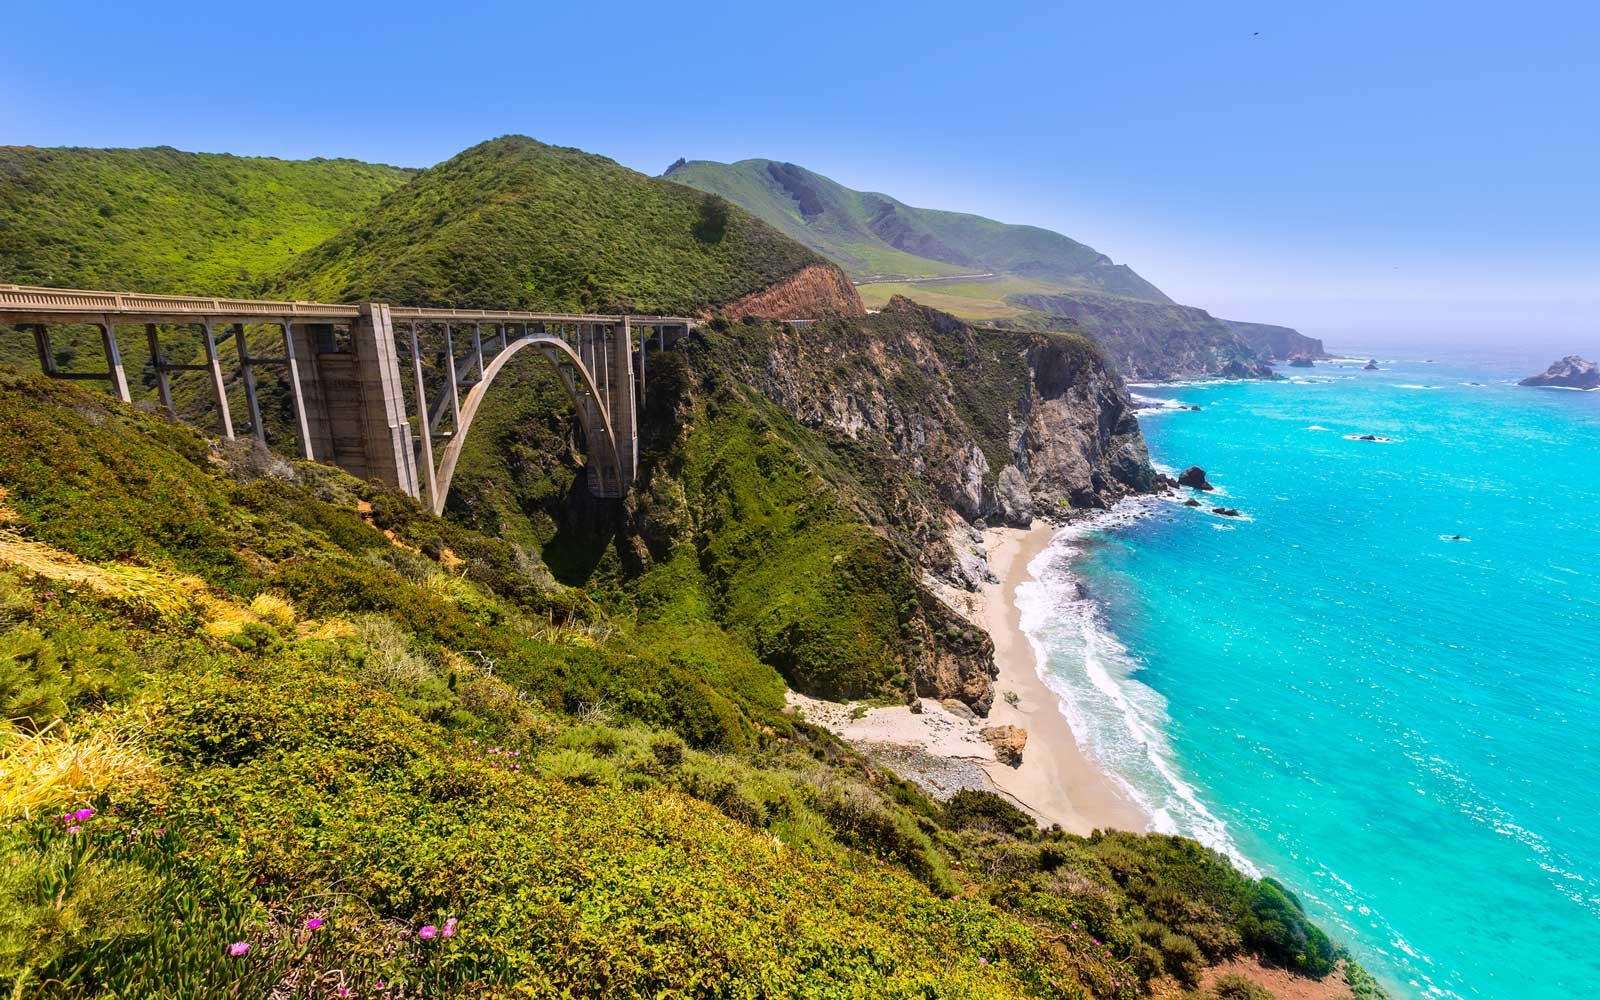 California Bixby bridge in Big Sur Monterey County